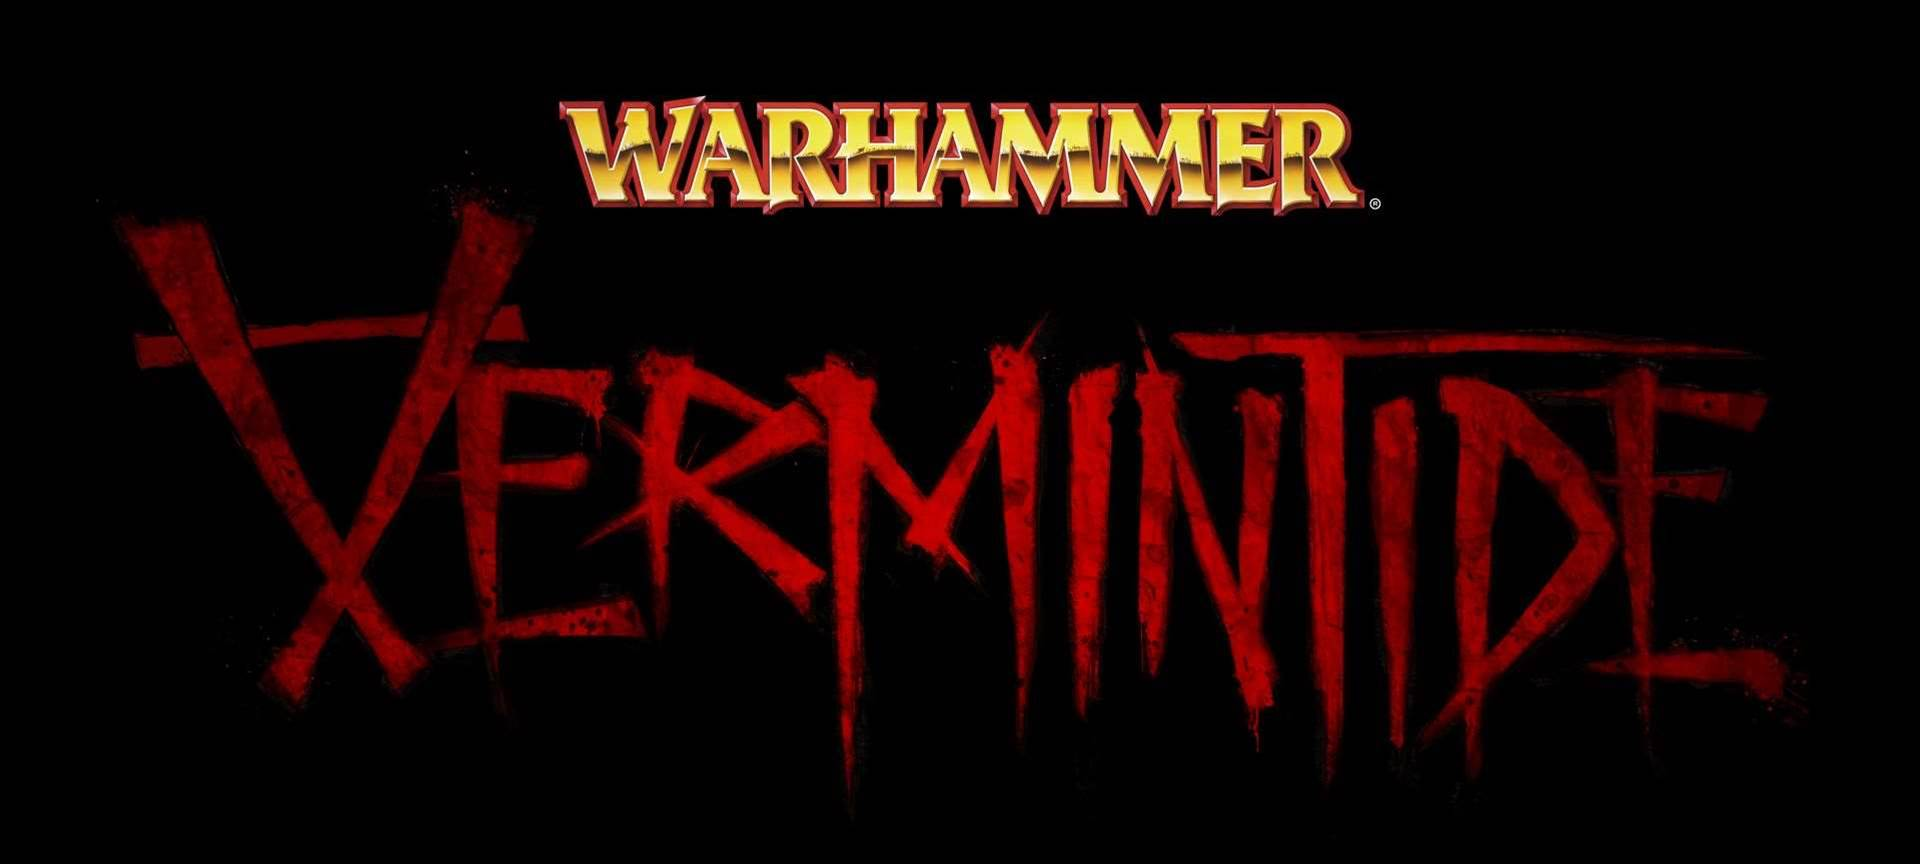 Get inside the Vermintide